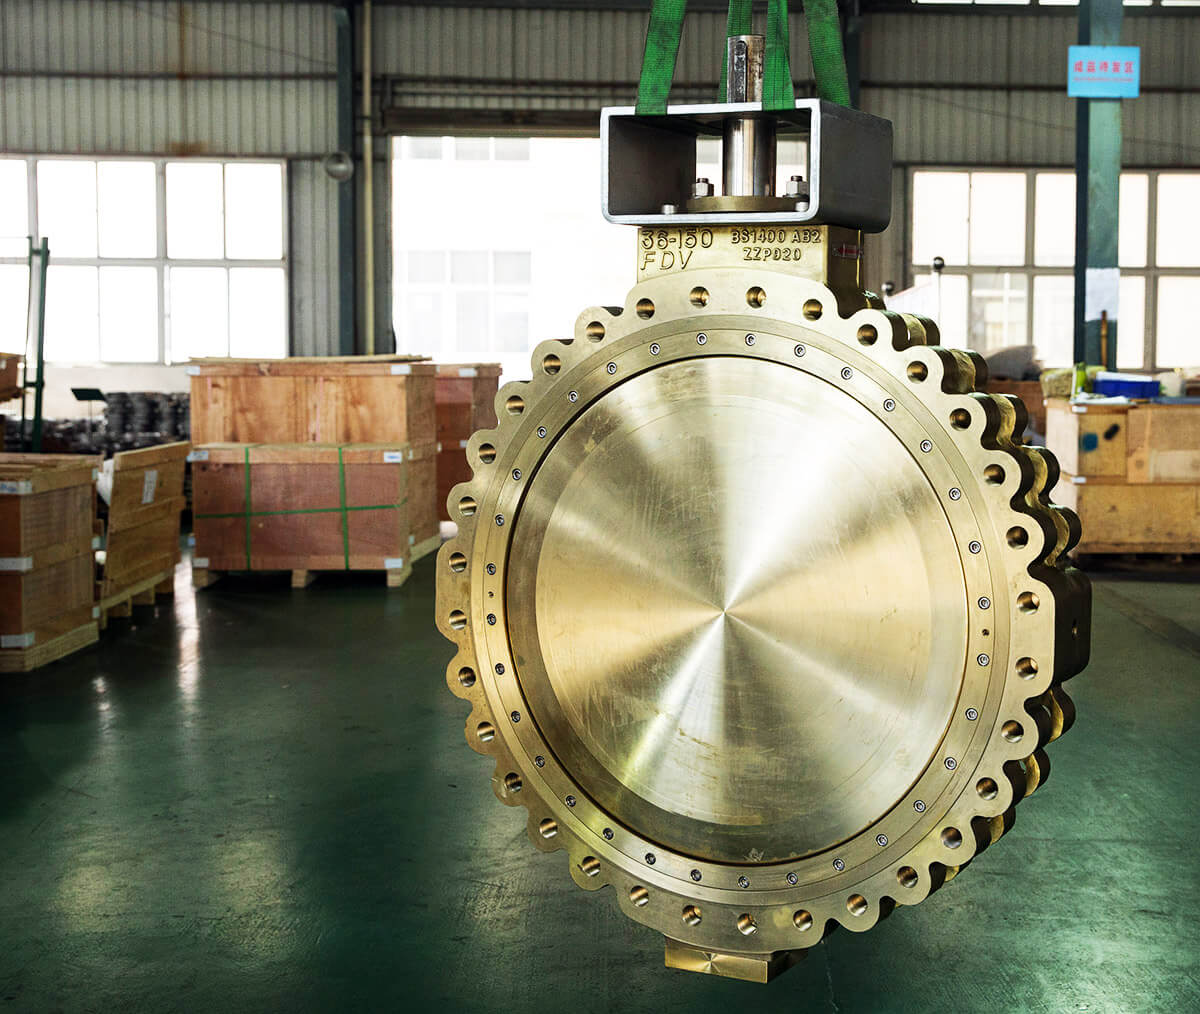 FDV  36 & 48 inches Aluminium Bronze high performance butterfly valves & dual plate check valves are ready to ship